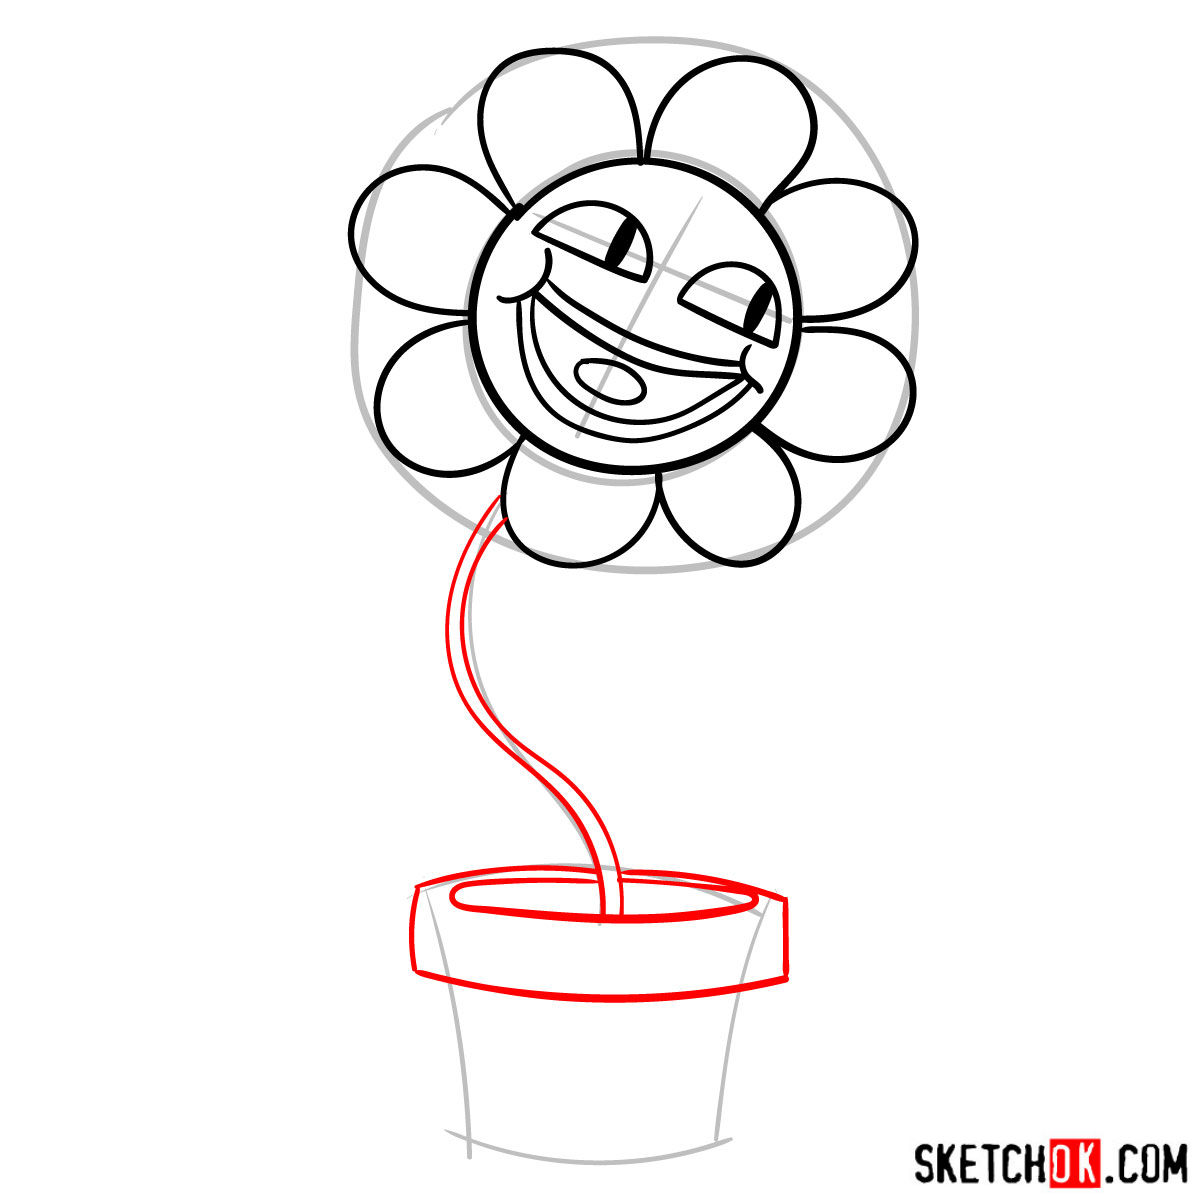 How to draw a pink flower Leslie from Gumball series - step 05